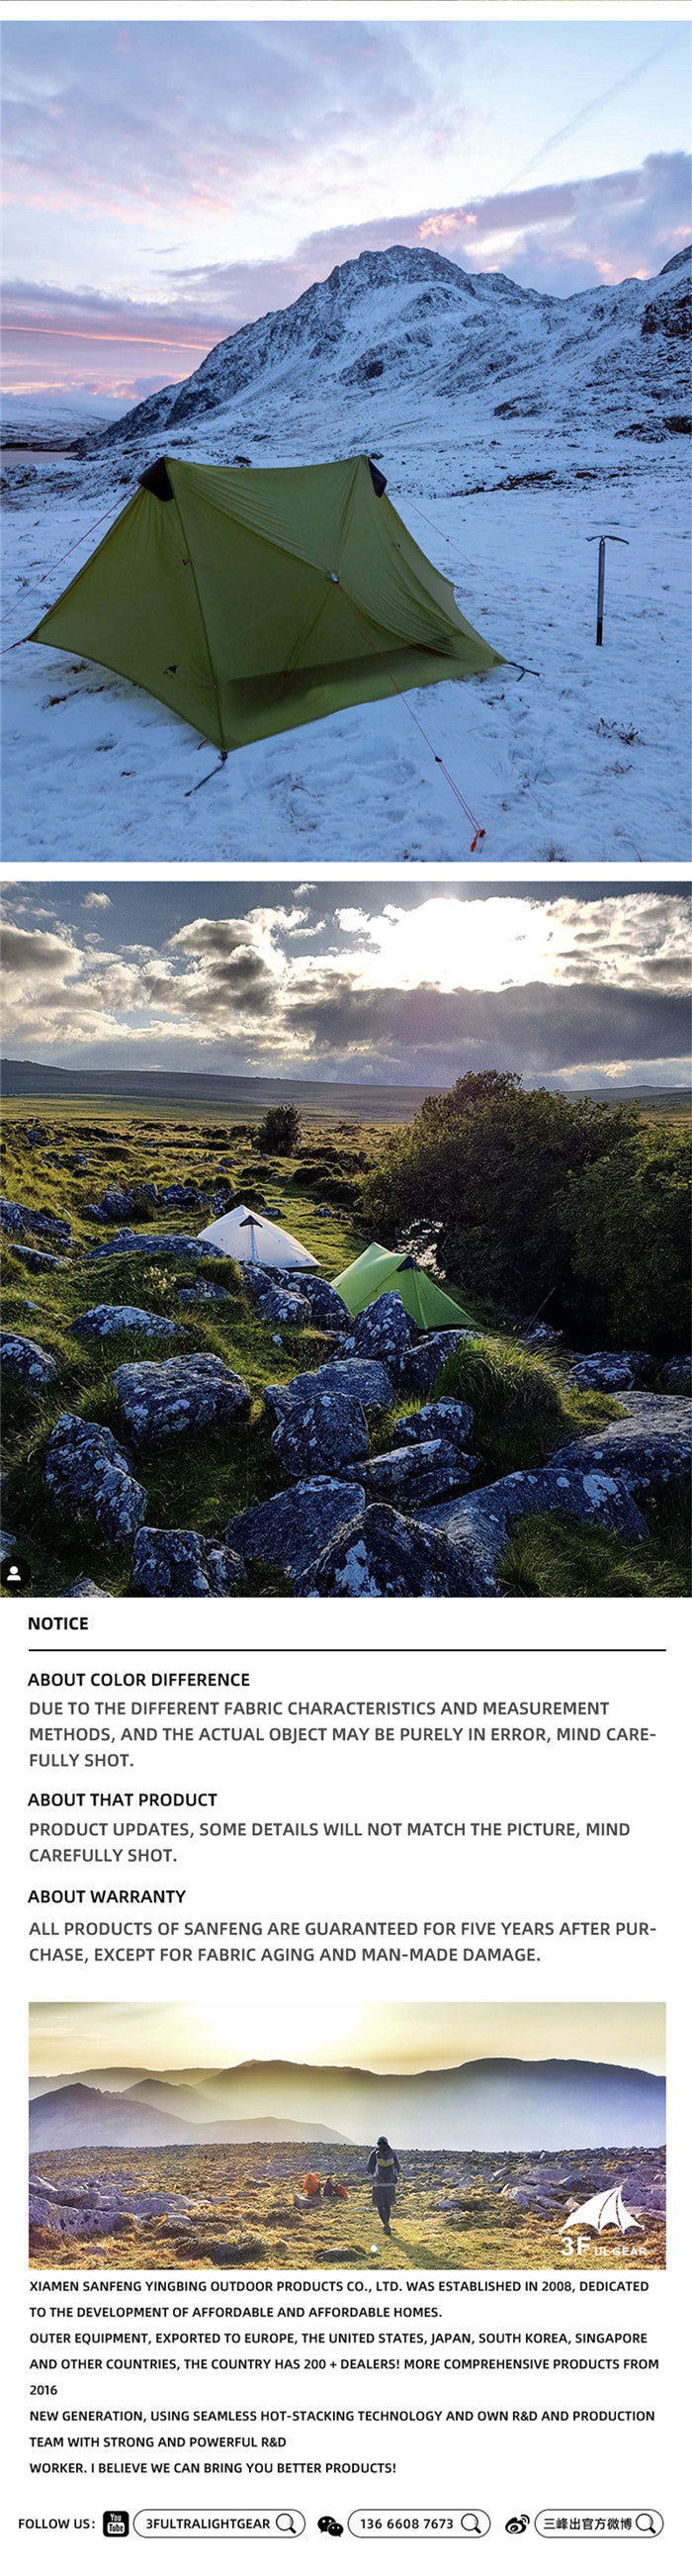 pro Tent 2 Person Outdoor